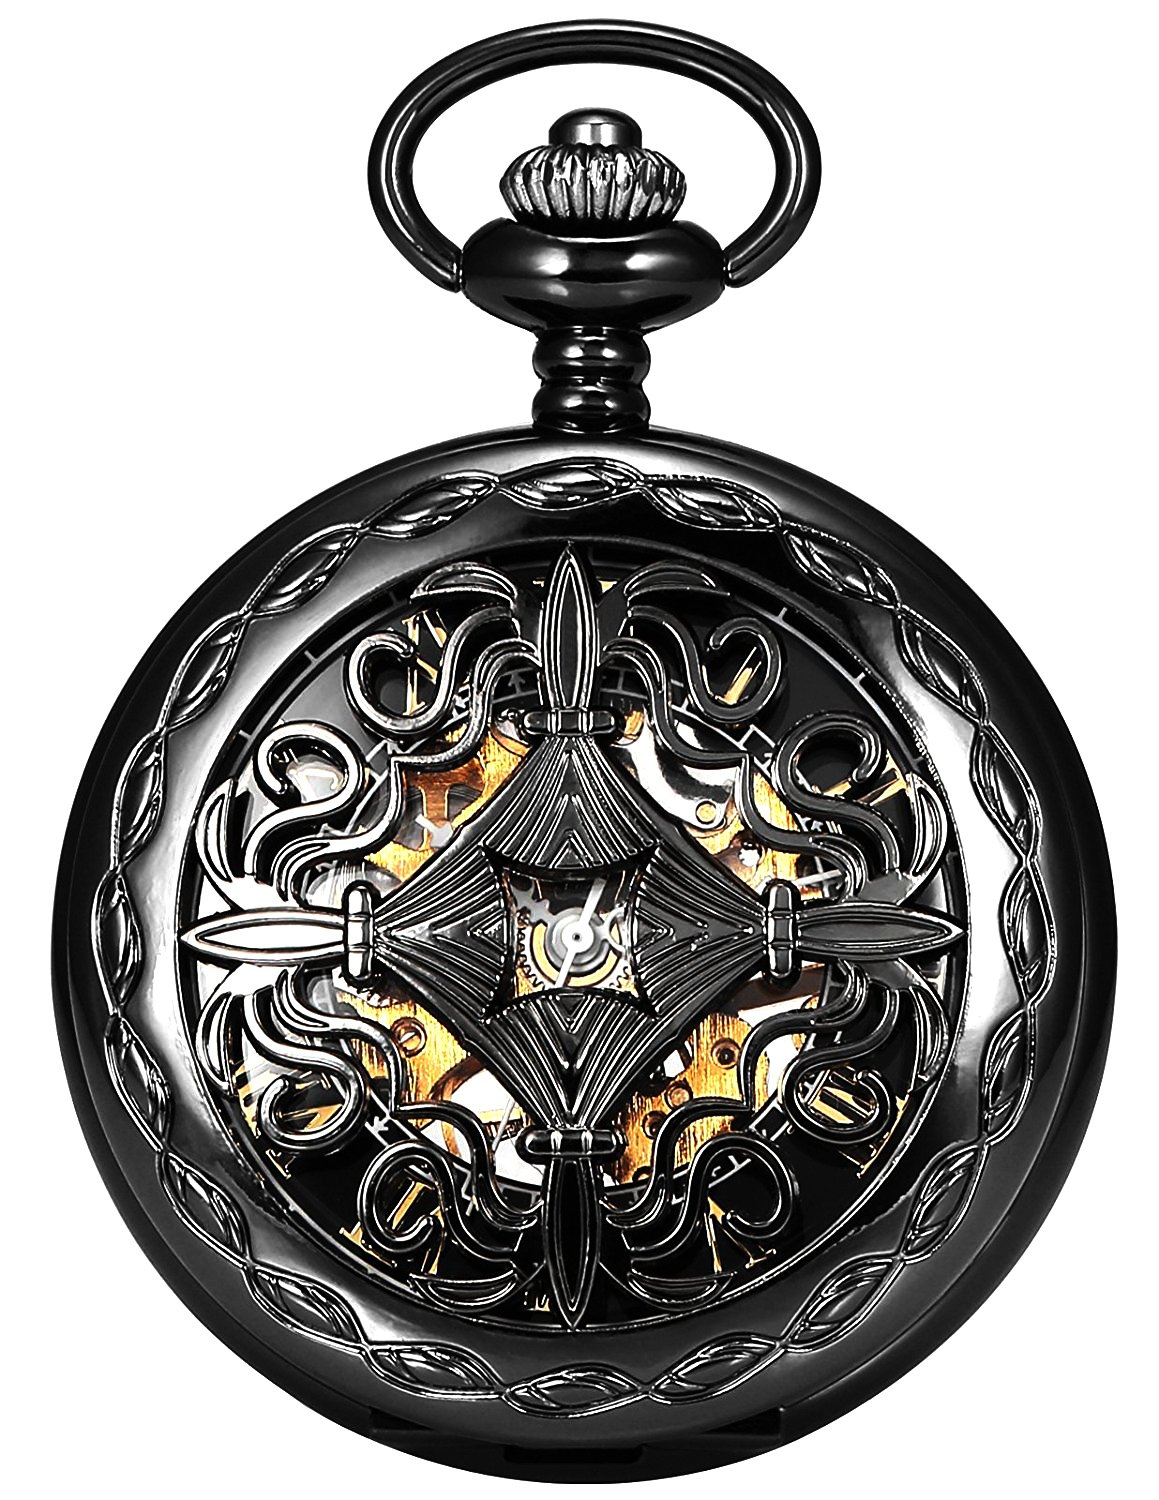 Steampunk Vintage Roman Letters Design Case Mechanical Pocket Watch with Chains for Xmas Gifts 3